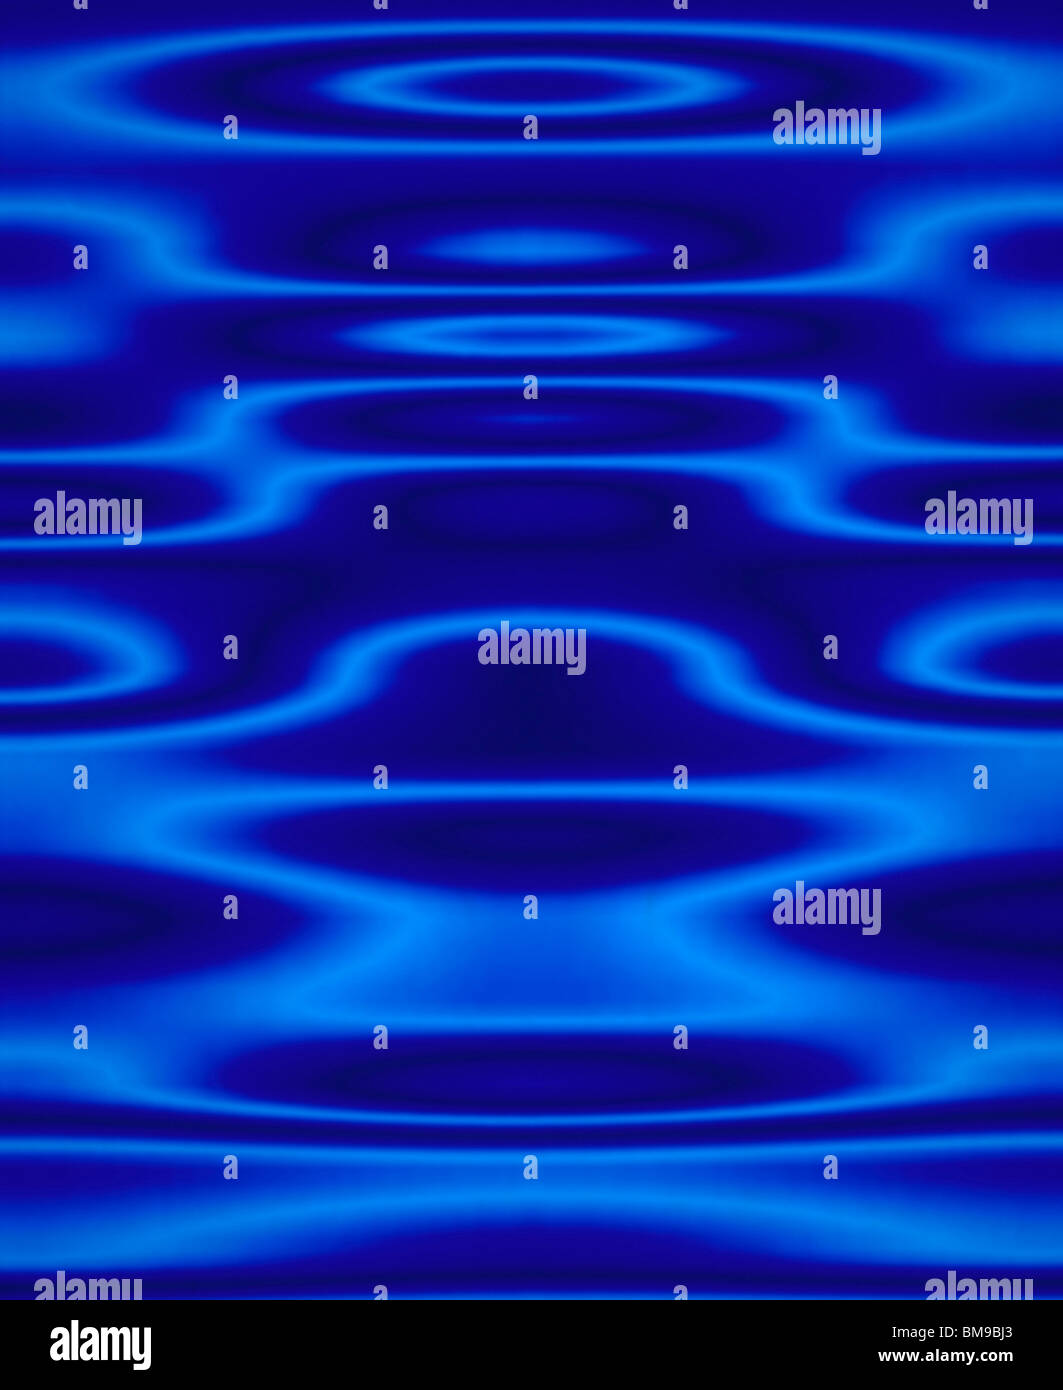 Blue Abstract Artistic Pattern - Stock Image